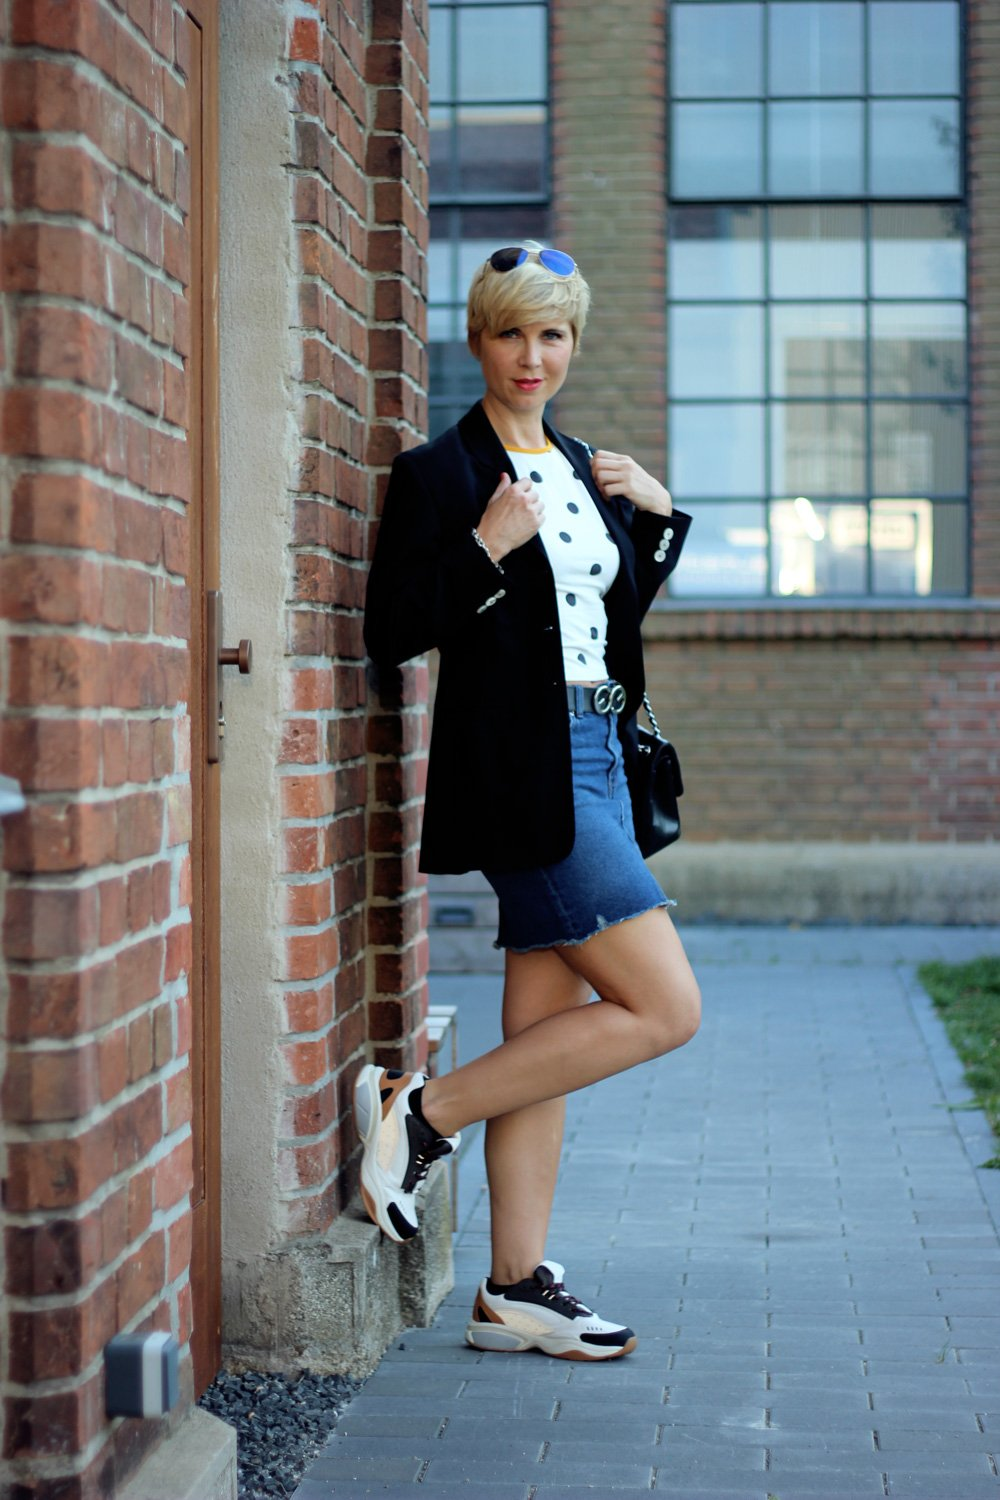 Conny-Doll-Lifestyle: Ladybloggers, Aktion, Vintage, Vintage-Blazer meets Jeans-Mini, Herbsttrend 2018